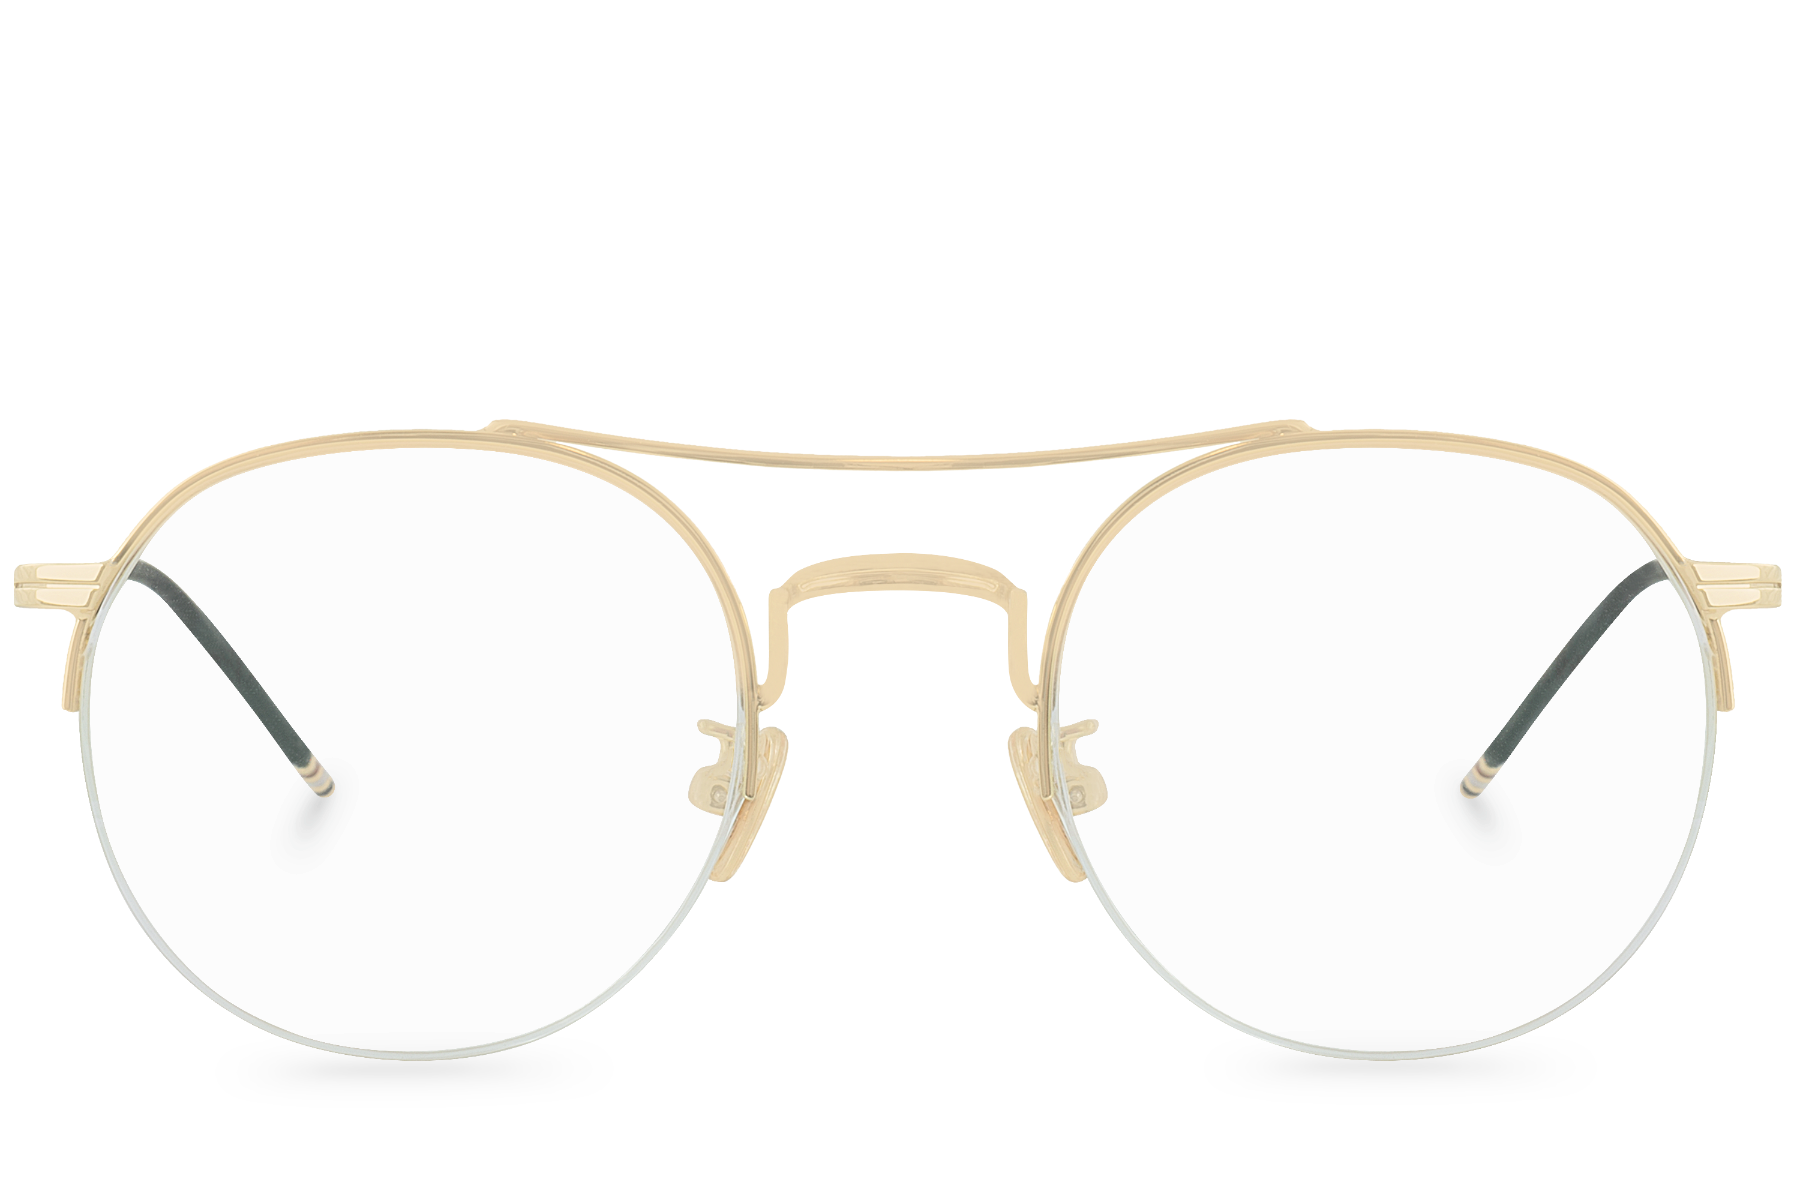 bradley polette glasses front view